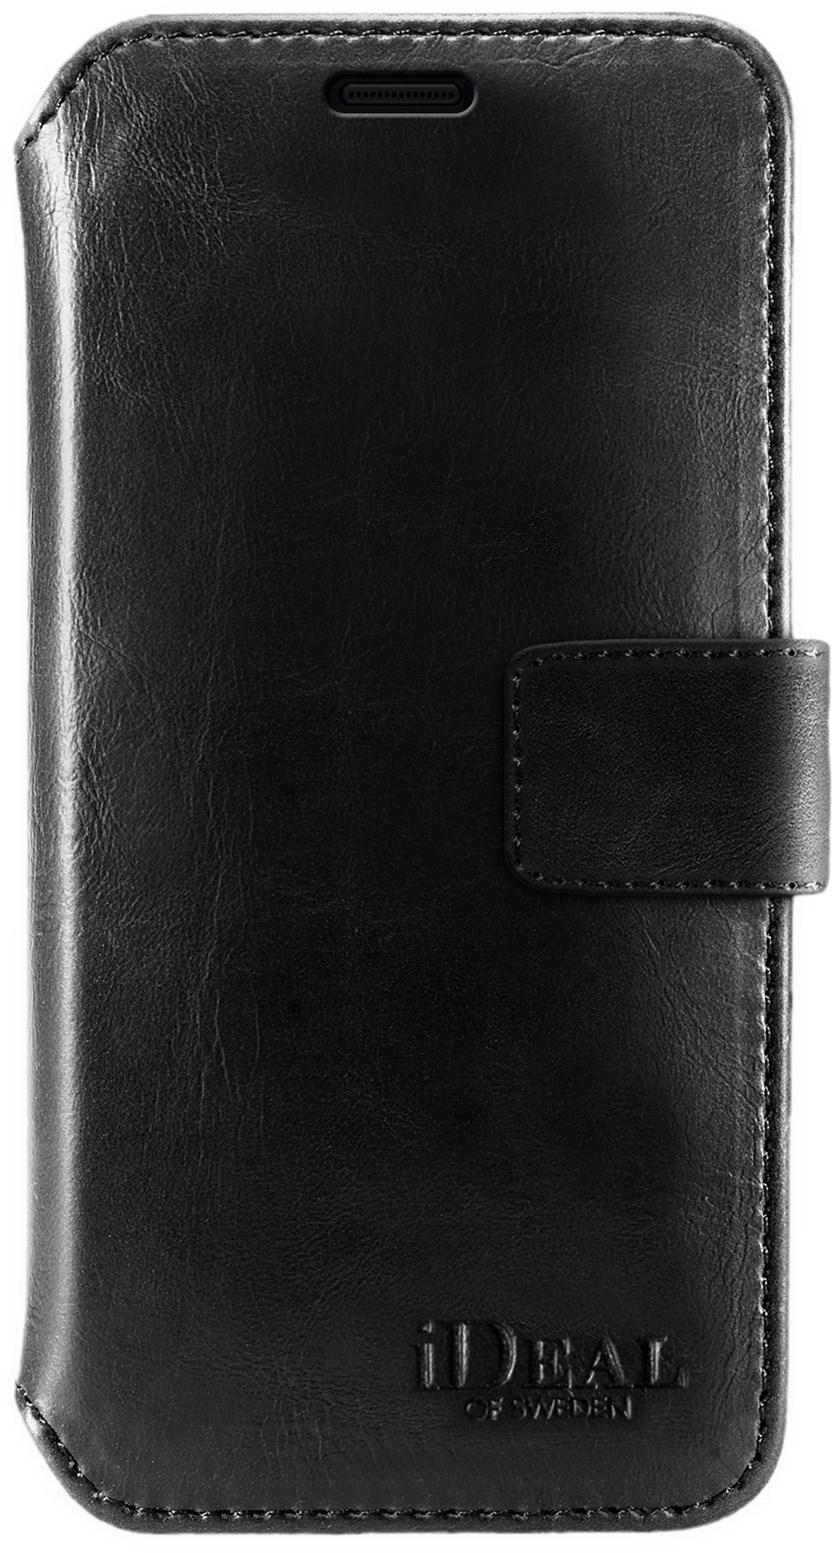 iDeal of Sweden Ideal Sthlm Wallet Samsung Galaxy S10e Black